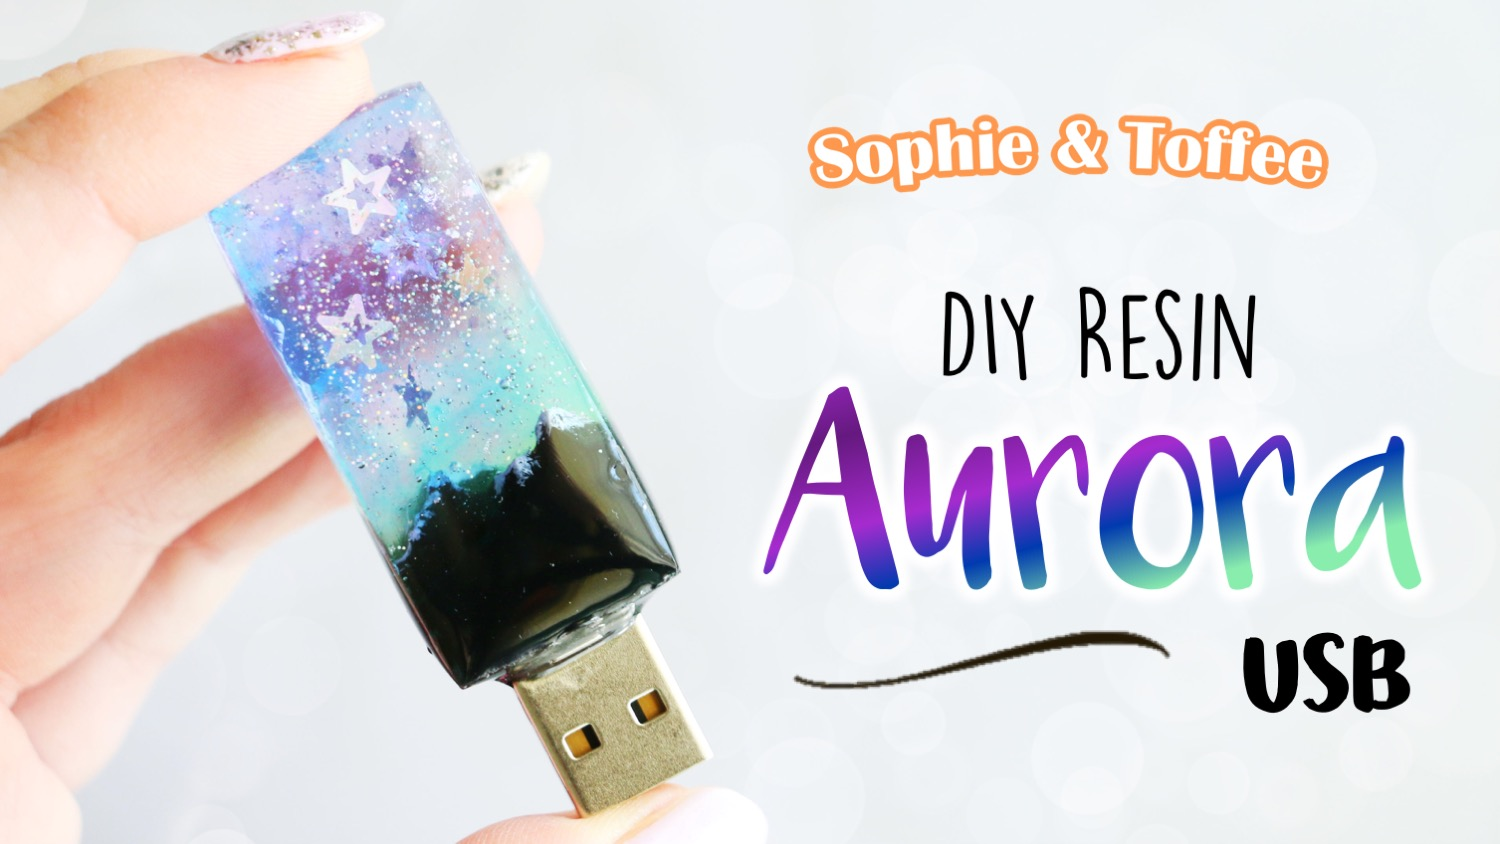 Sophie & Toffee | The Elves Box Subscription | UV Resin